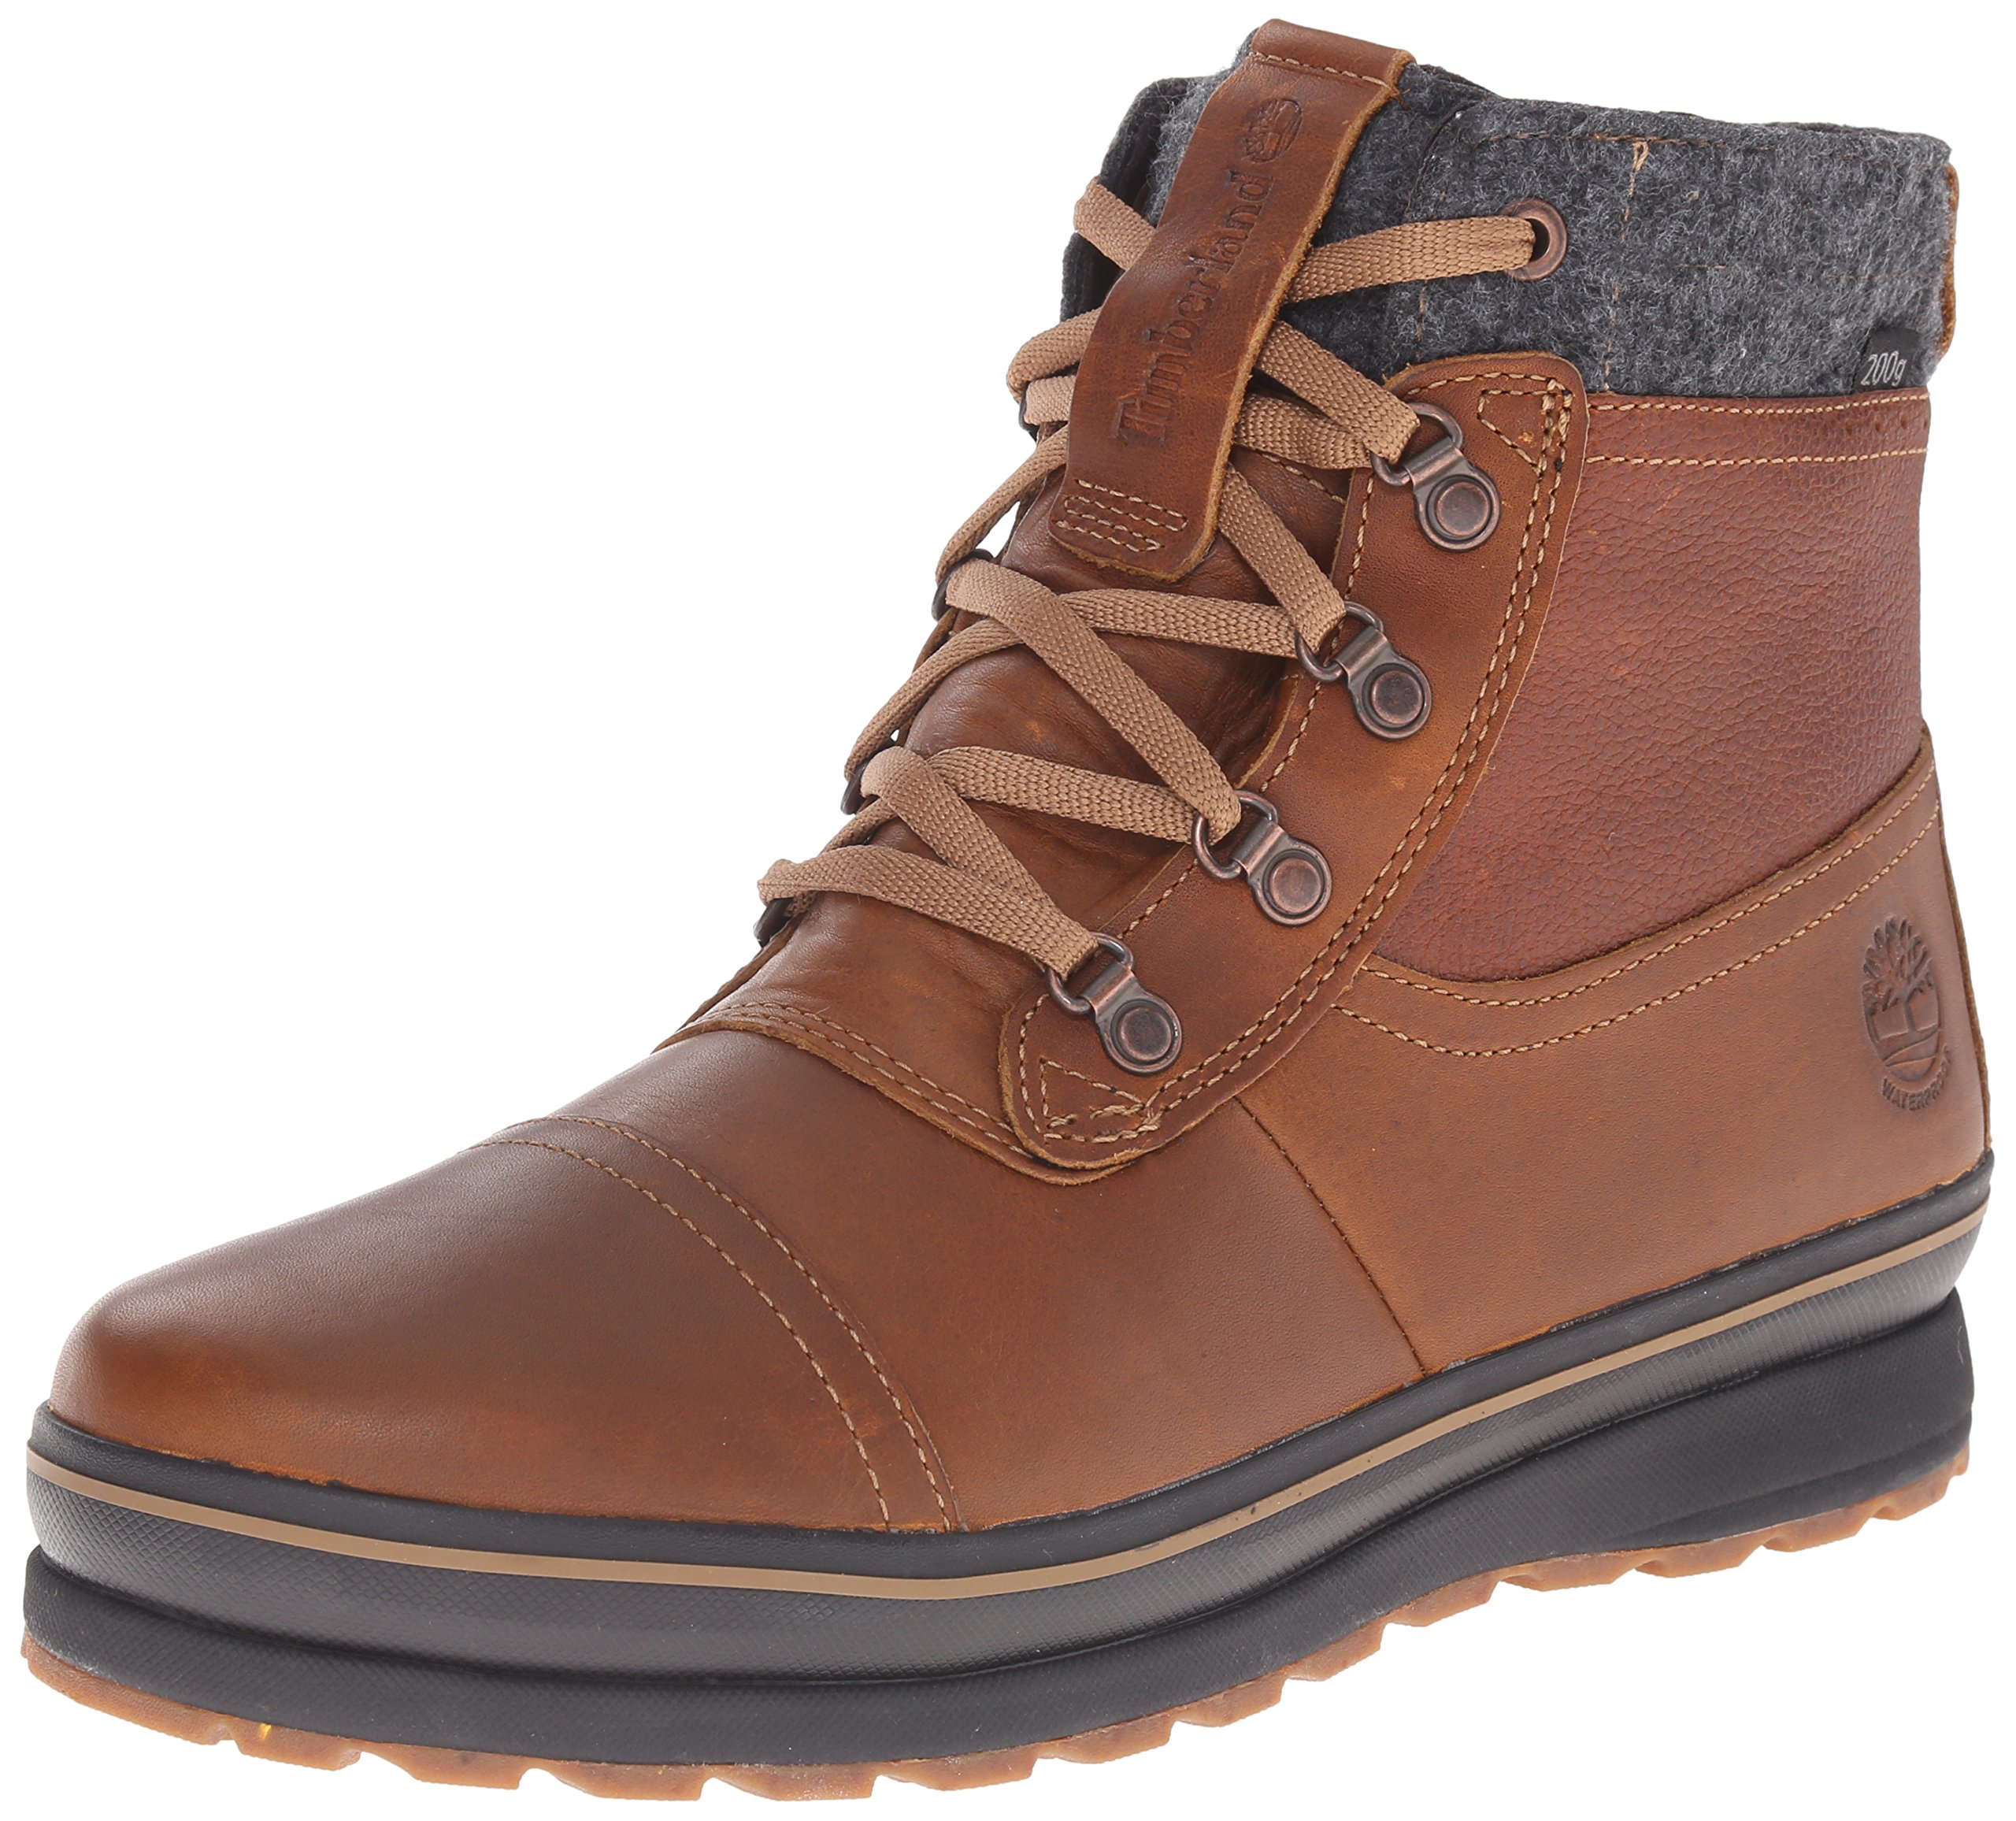 Timberland Men's Schazzberg Mid WP Insulated Winter Boot